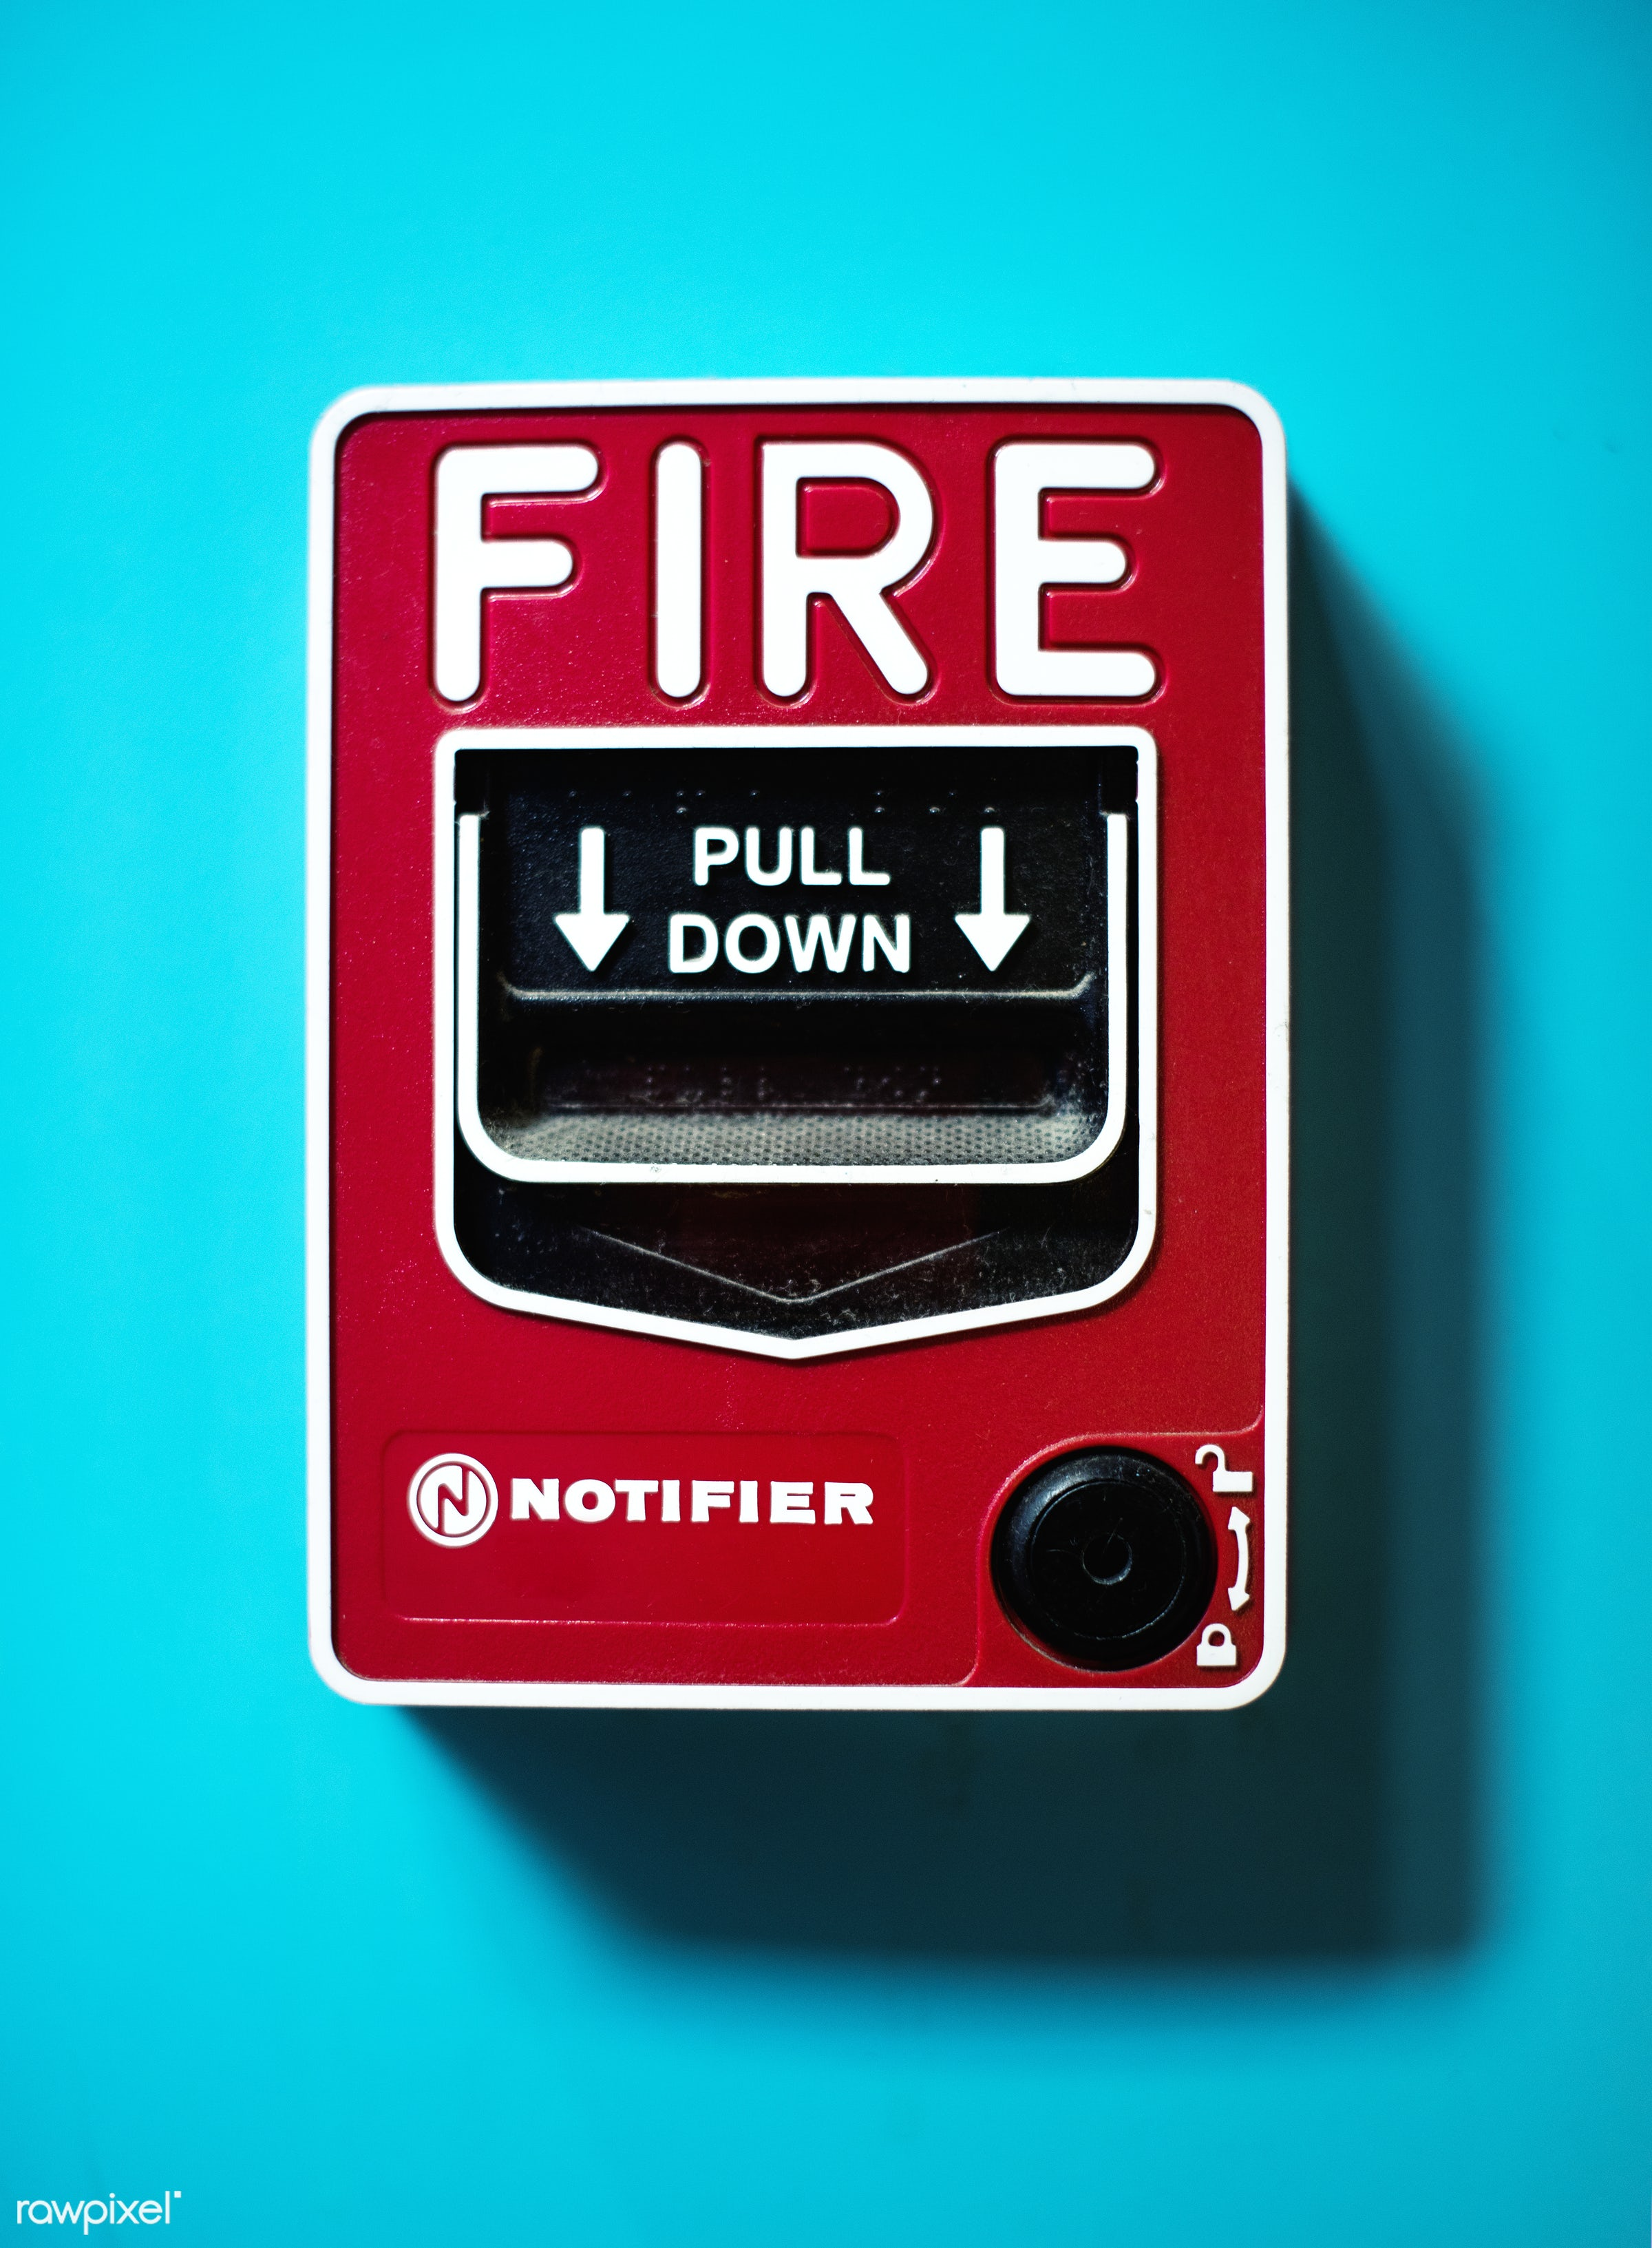 accident, emergency, rescue, equipment, switch, security, danger, symbol, alert, fire, sign, alarm, red, safety, box,...